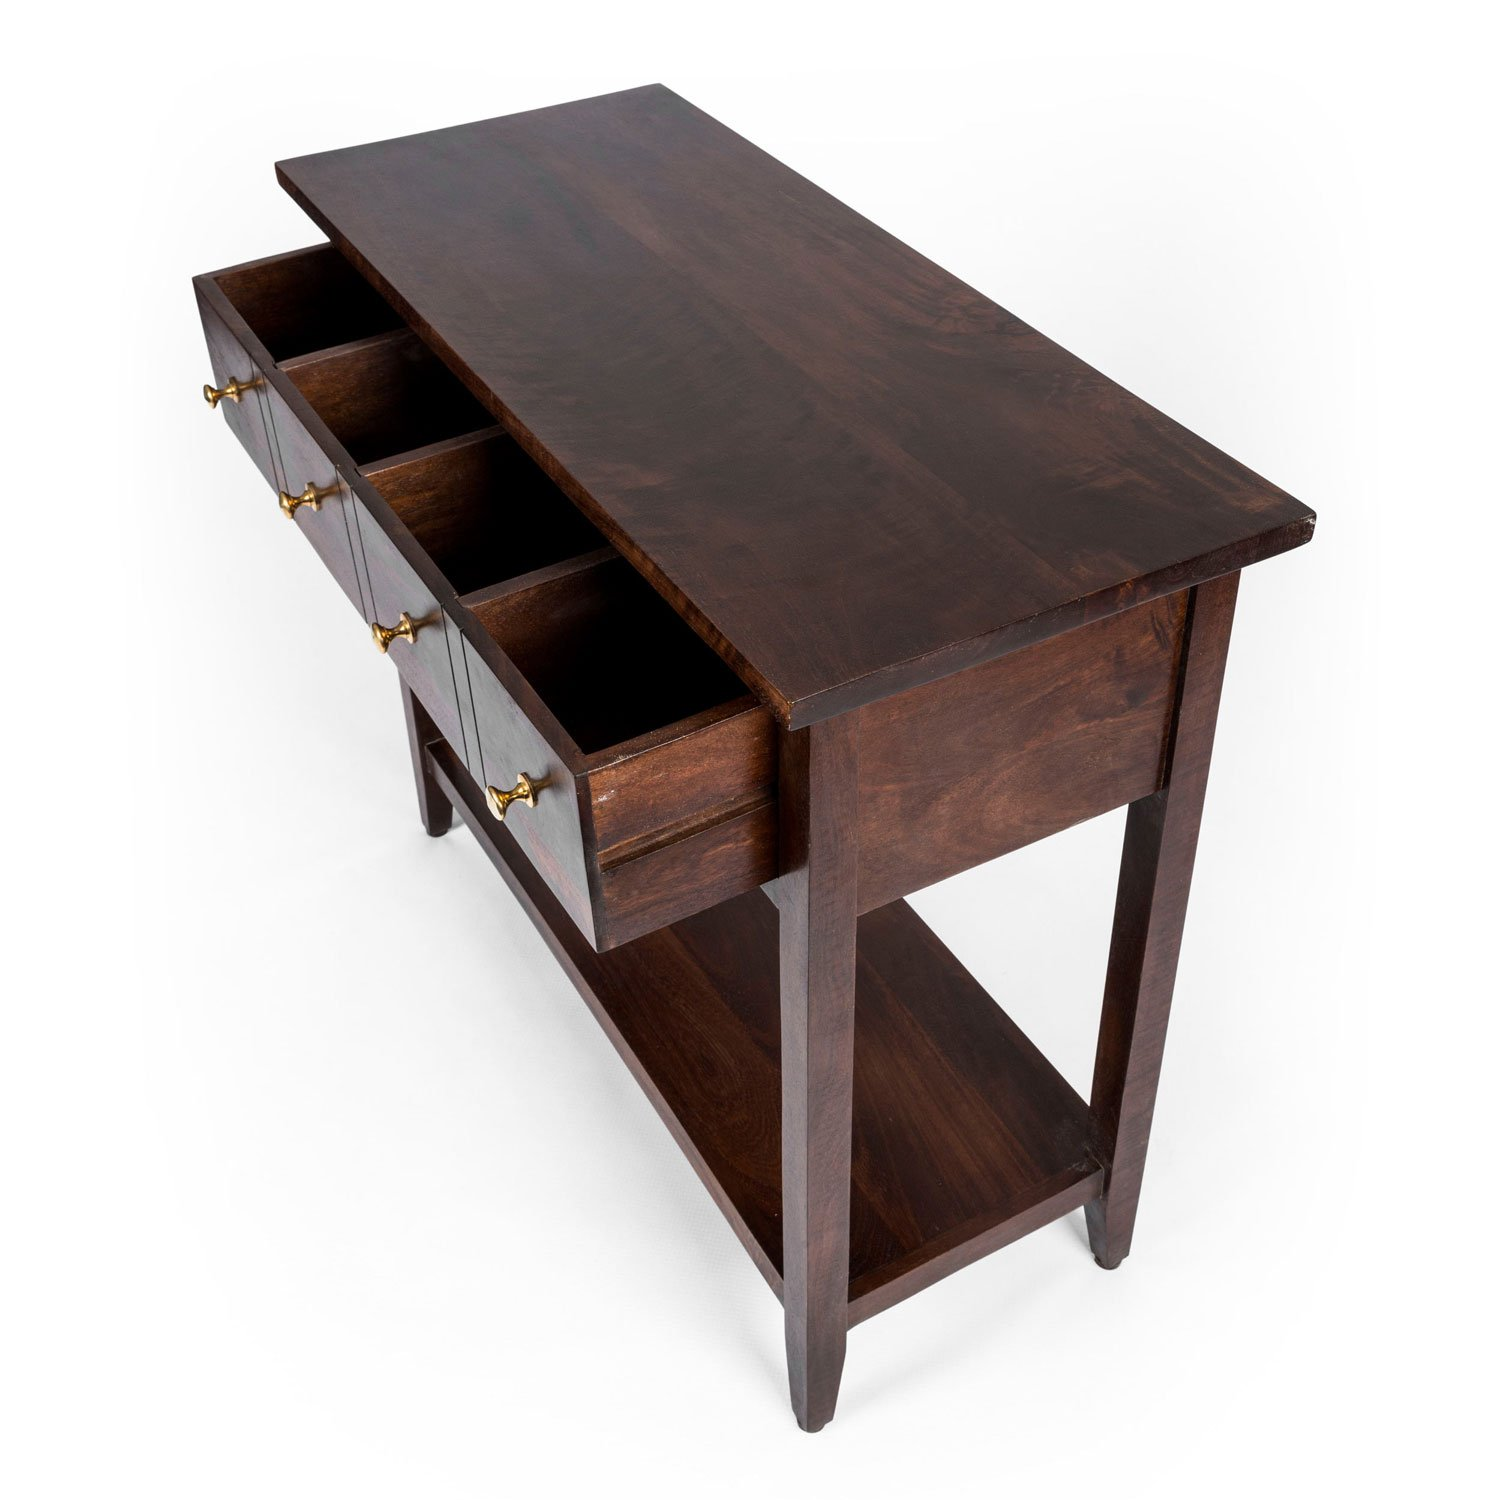 Homescapes Groove Dark Solid Mango Wood Console Table with Drawers